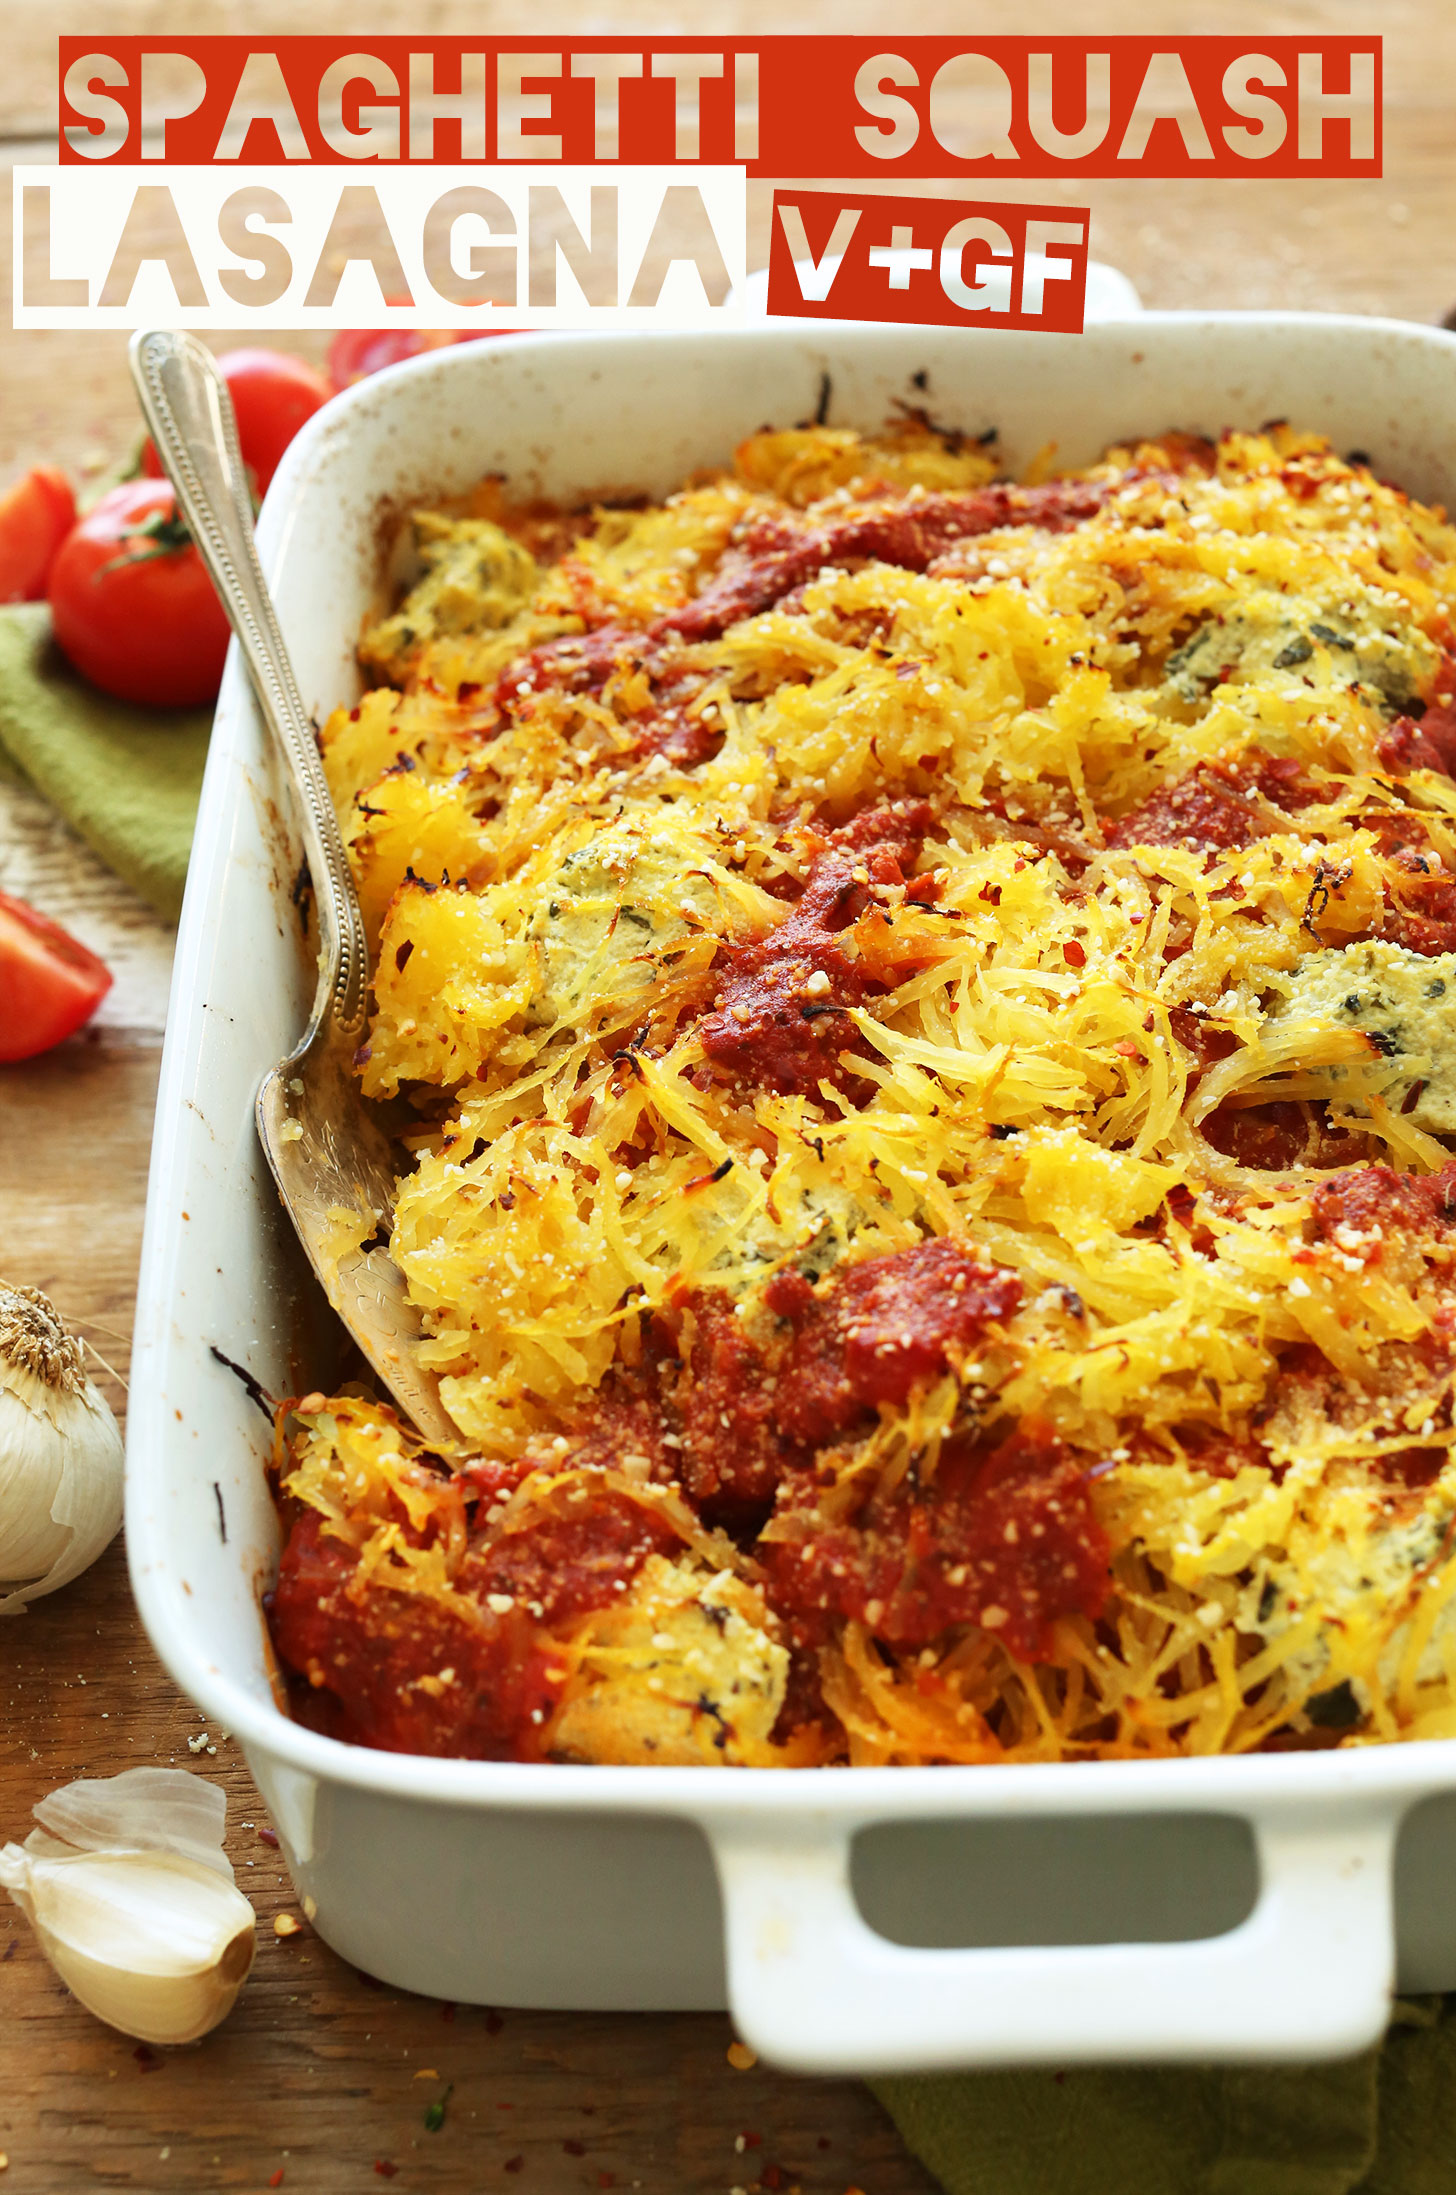 Spaghetti squash lasagna minimalist baker recipes healthy spaghetti squash lasagna bake 10 ingredients plant based so delicious forumfinder